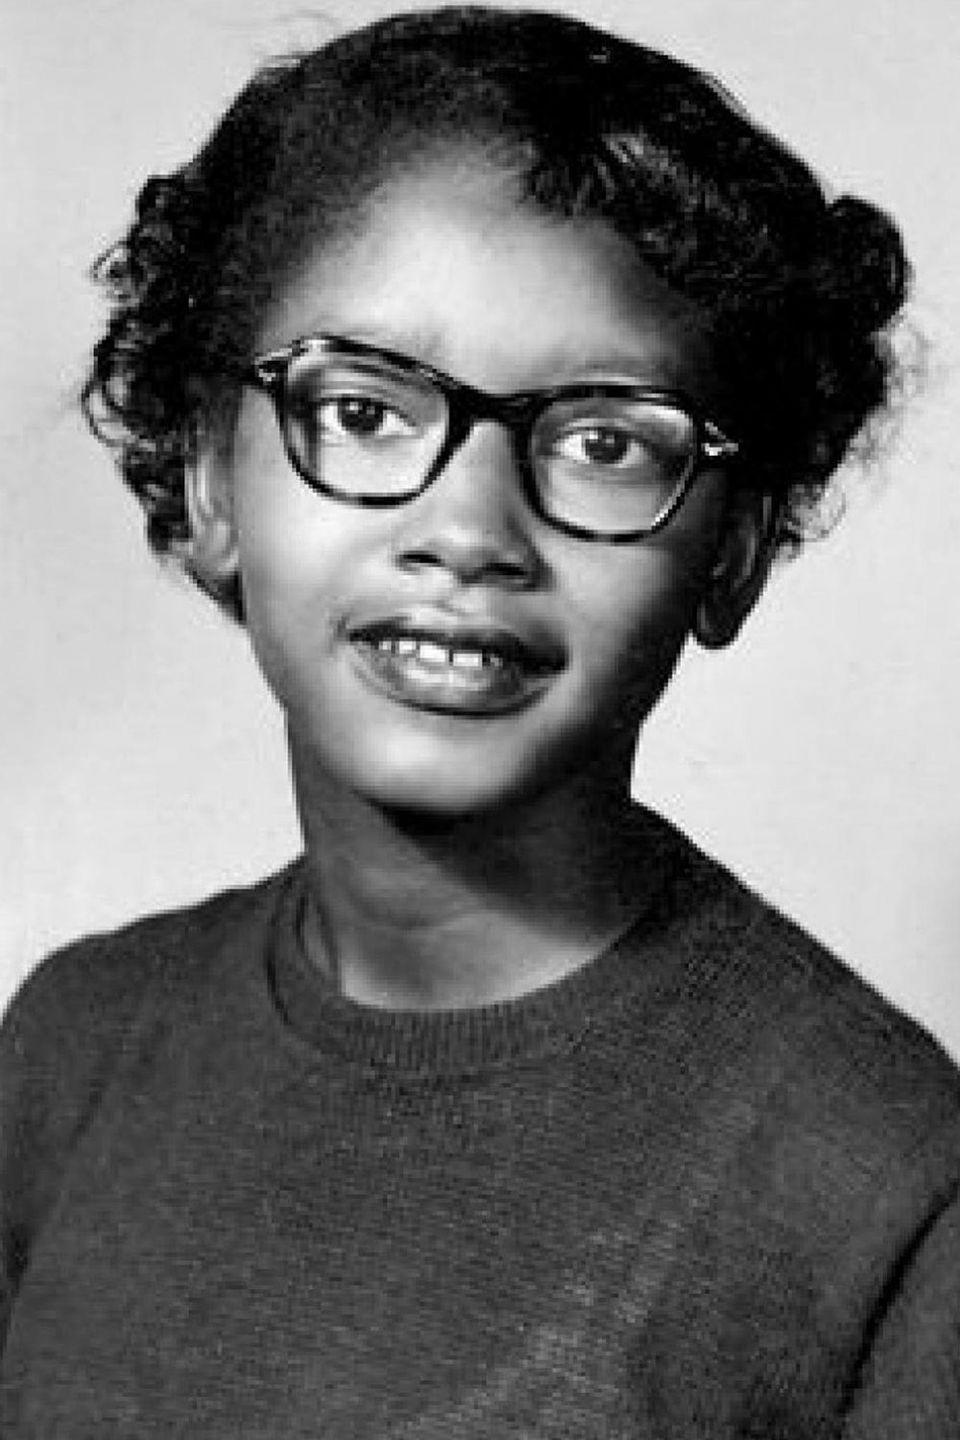 "<p>Colvin was 15 when she became a major player in the Civil Rights Movement by refusing to give up her bus seat to a caucasian rider. This was nine months before Rosa Parks was arrested for the same thing. She was one of the four plaintiffs involved in the Supreme Court case that ultimately outlawed segregation on Alabama buses. Colvin has said about her experience, ""I feel very, very proud of what I did. I do feel like what I did was a spark and it caught on.""</p>"